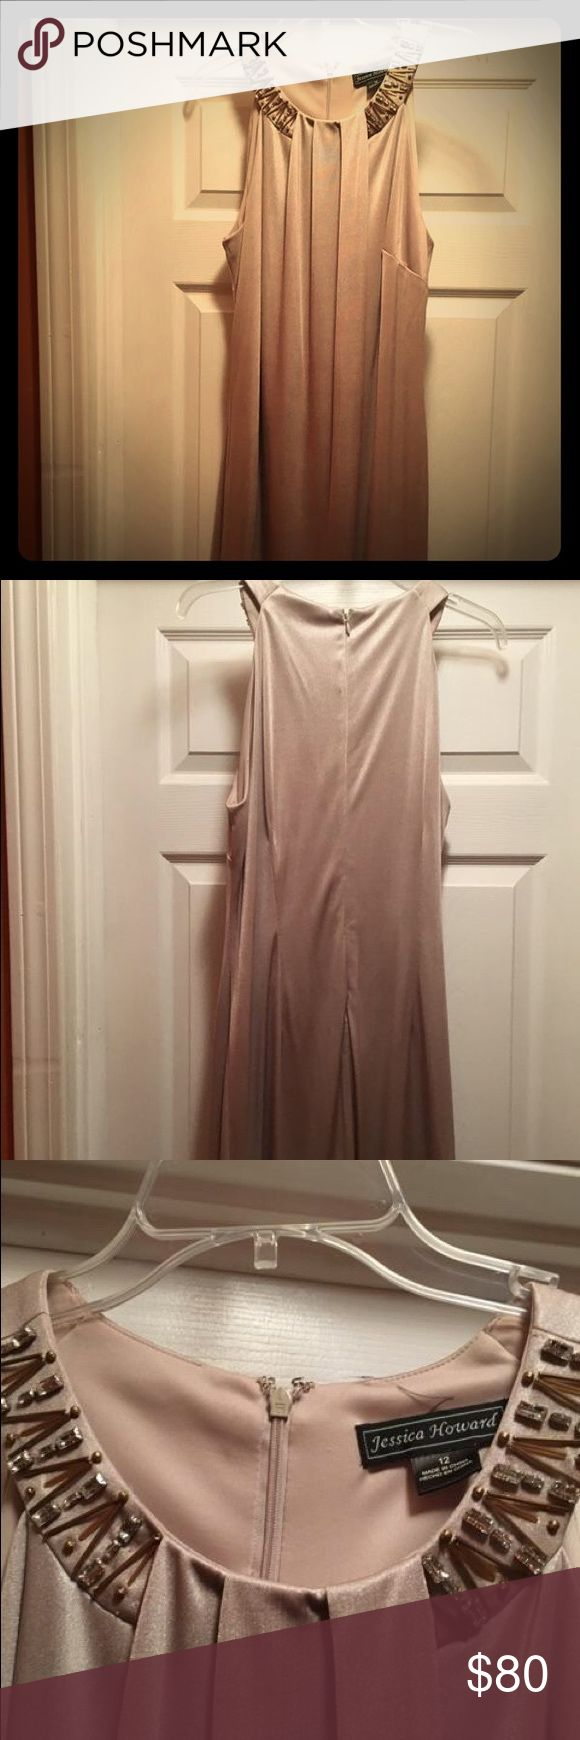 Formal dress Beautiful nude formal dress. Only worn once to a wedding. Dresses Wedding